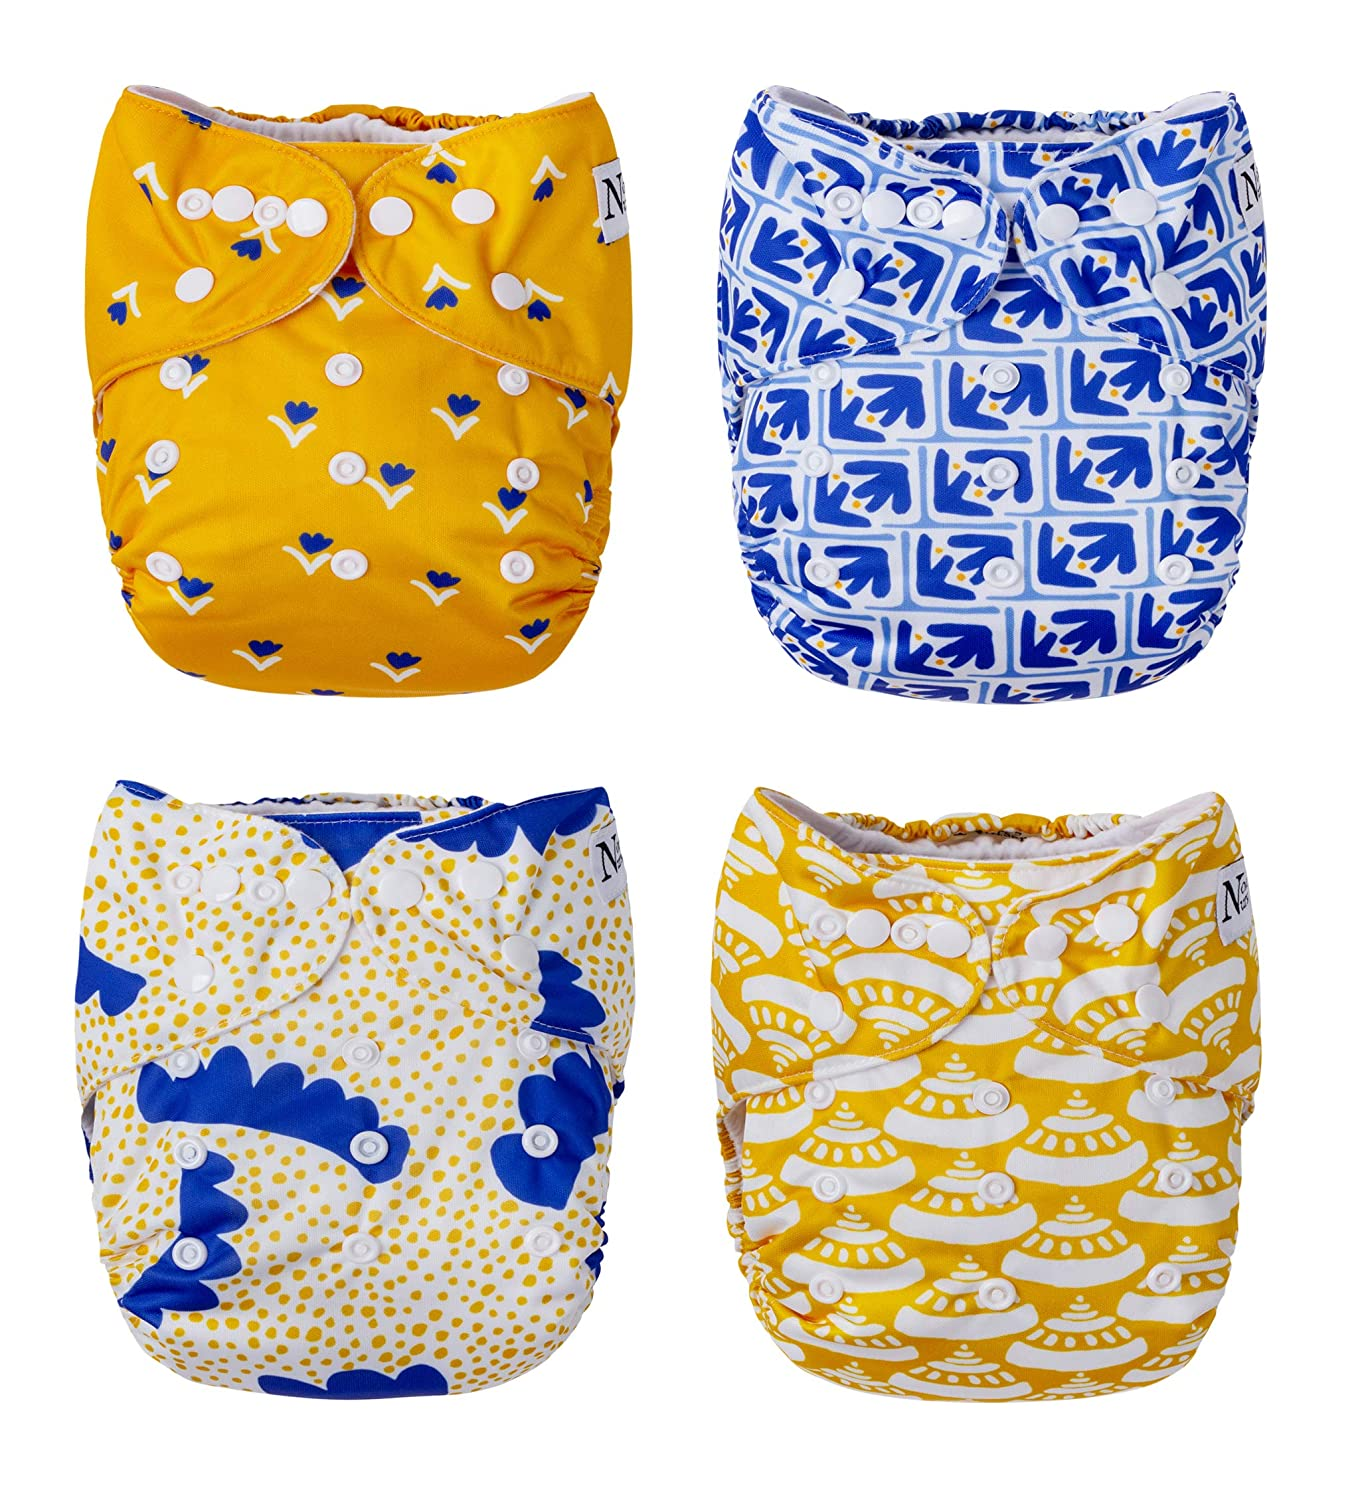 Fan Favorites 4-Pack Cloth Pocket Diapers with 4 Bamboo Inserts